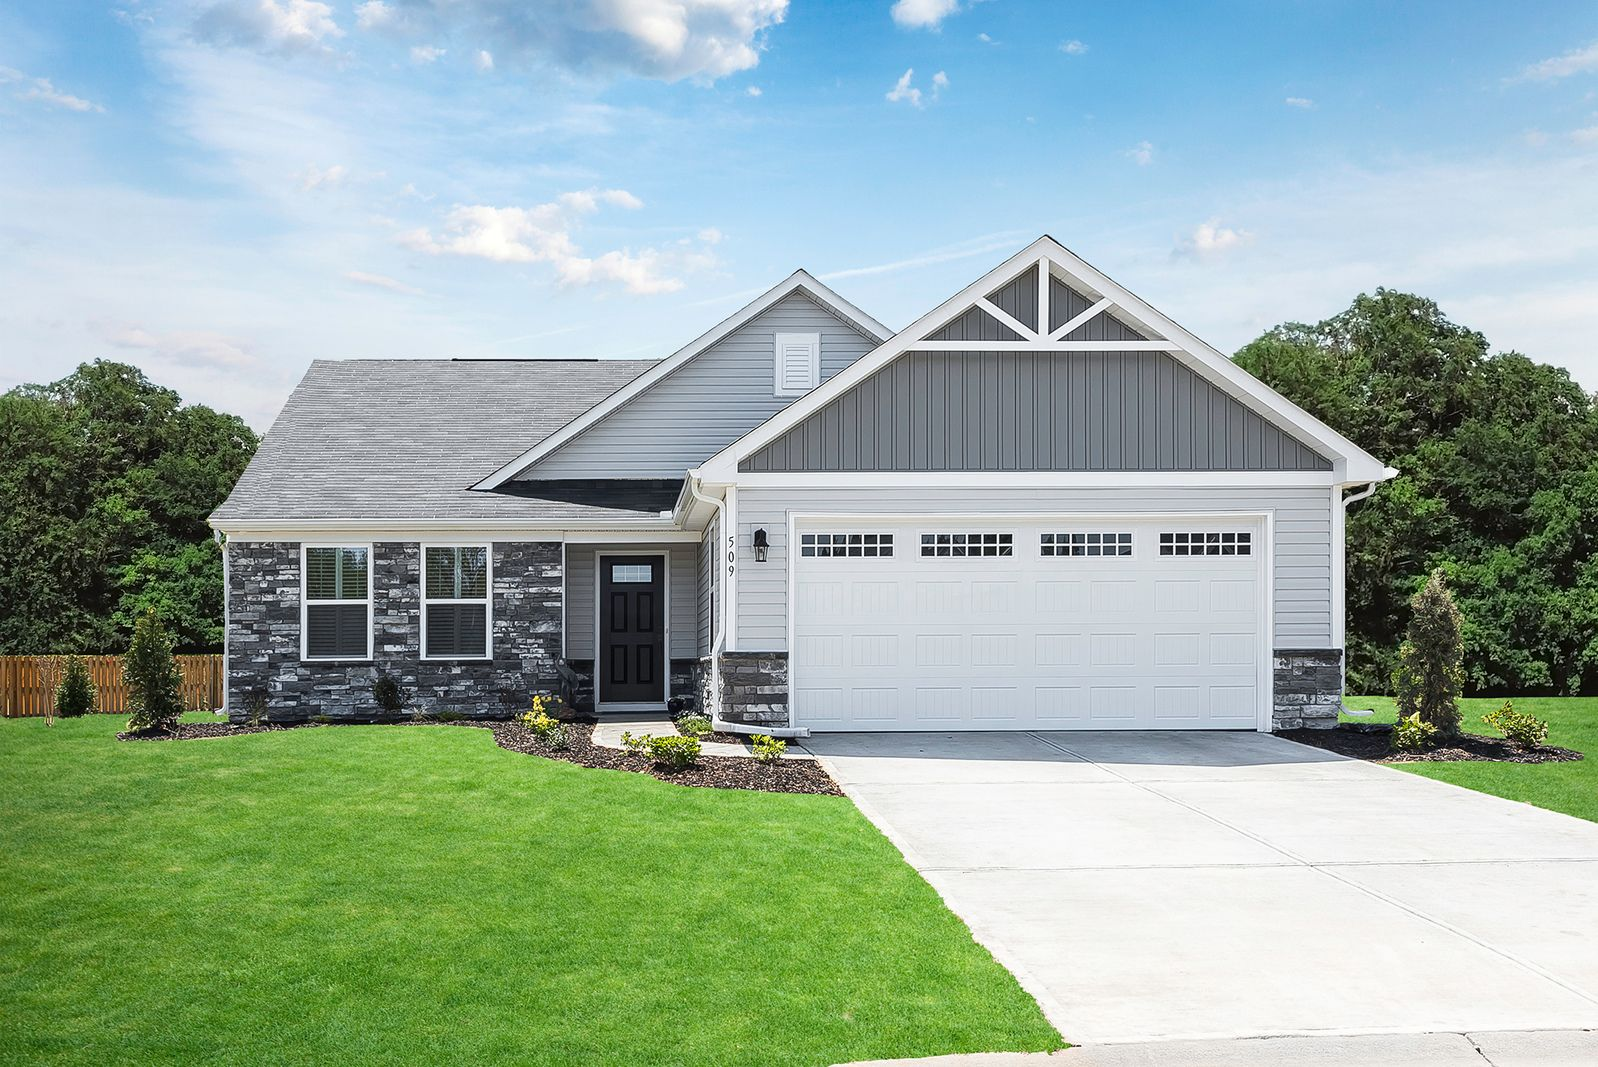 The area's lowest-priced, new ranch home community with all lawn care included.